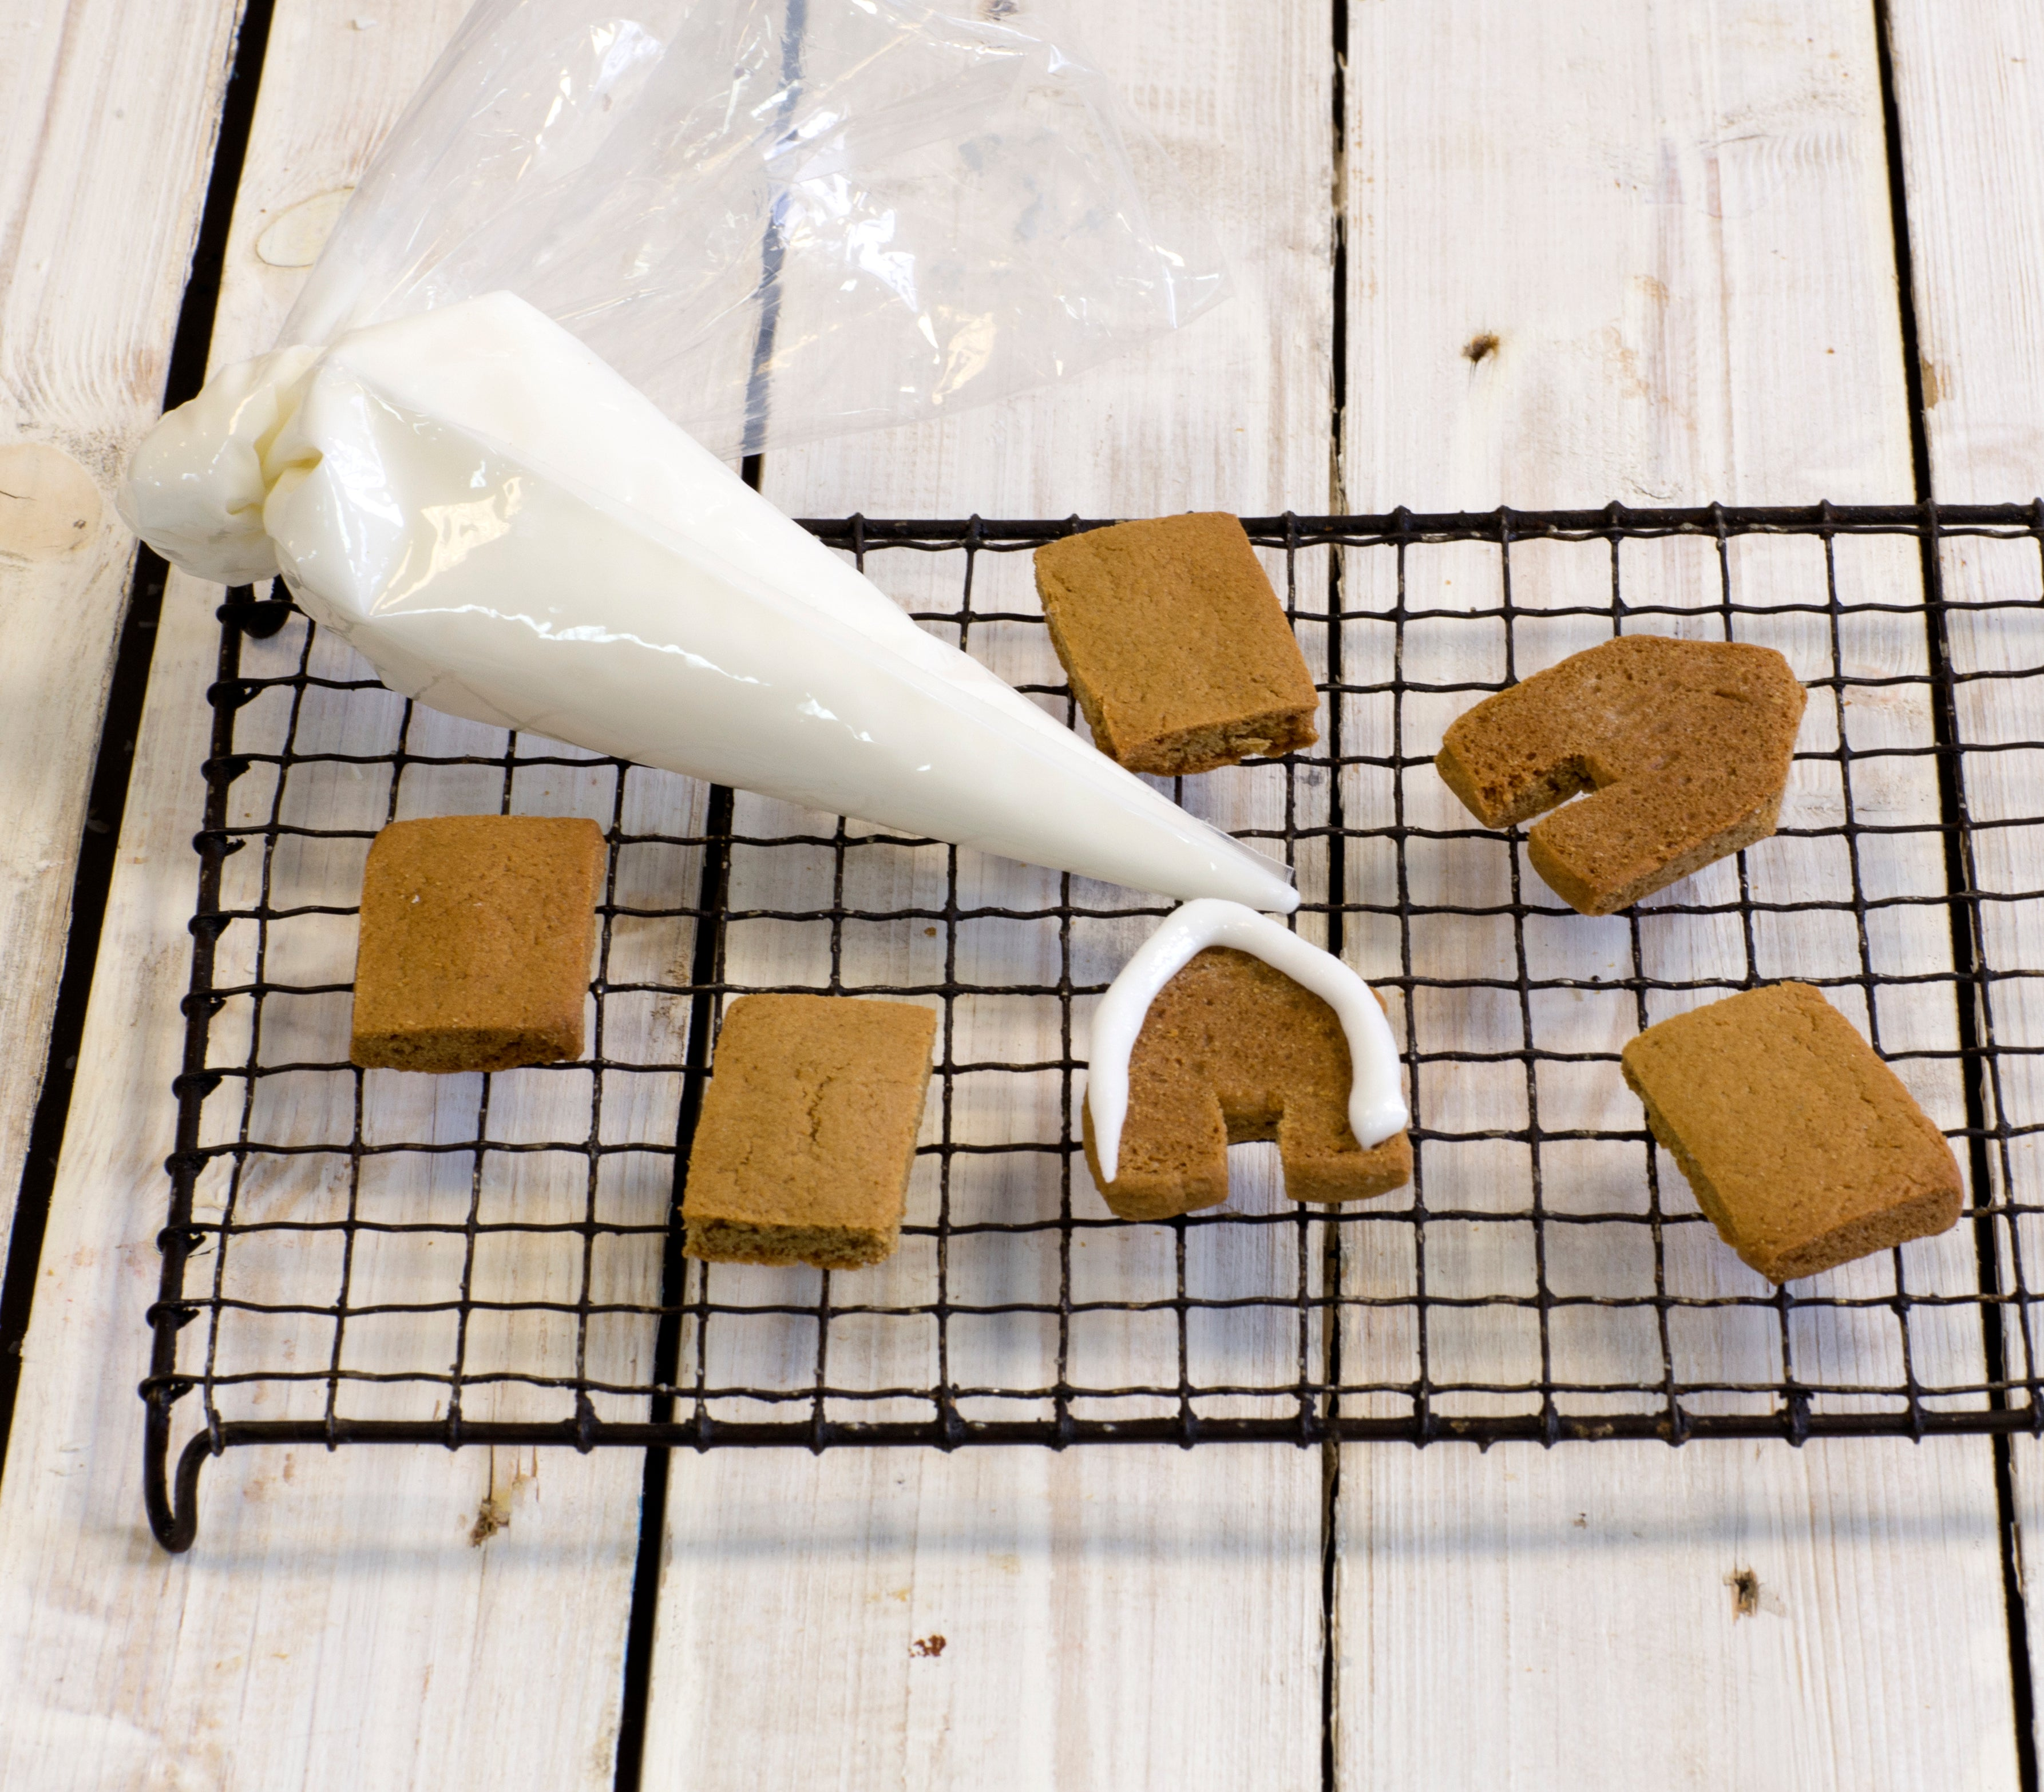 Baked gingerbread house shapes with icing bag